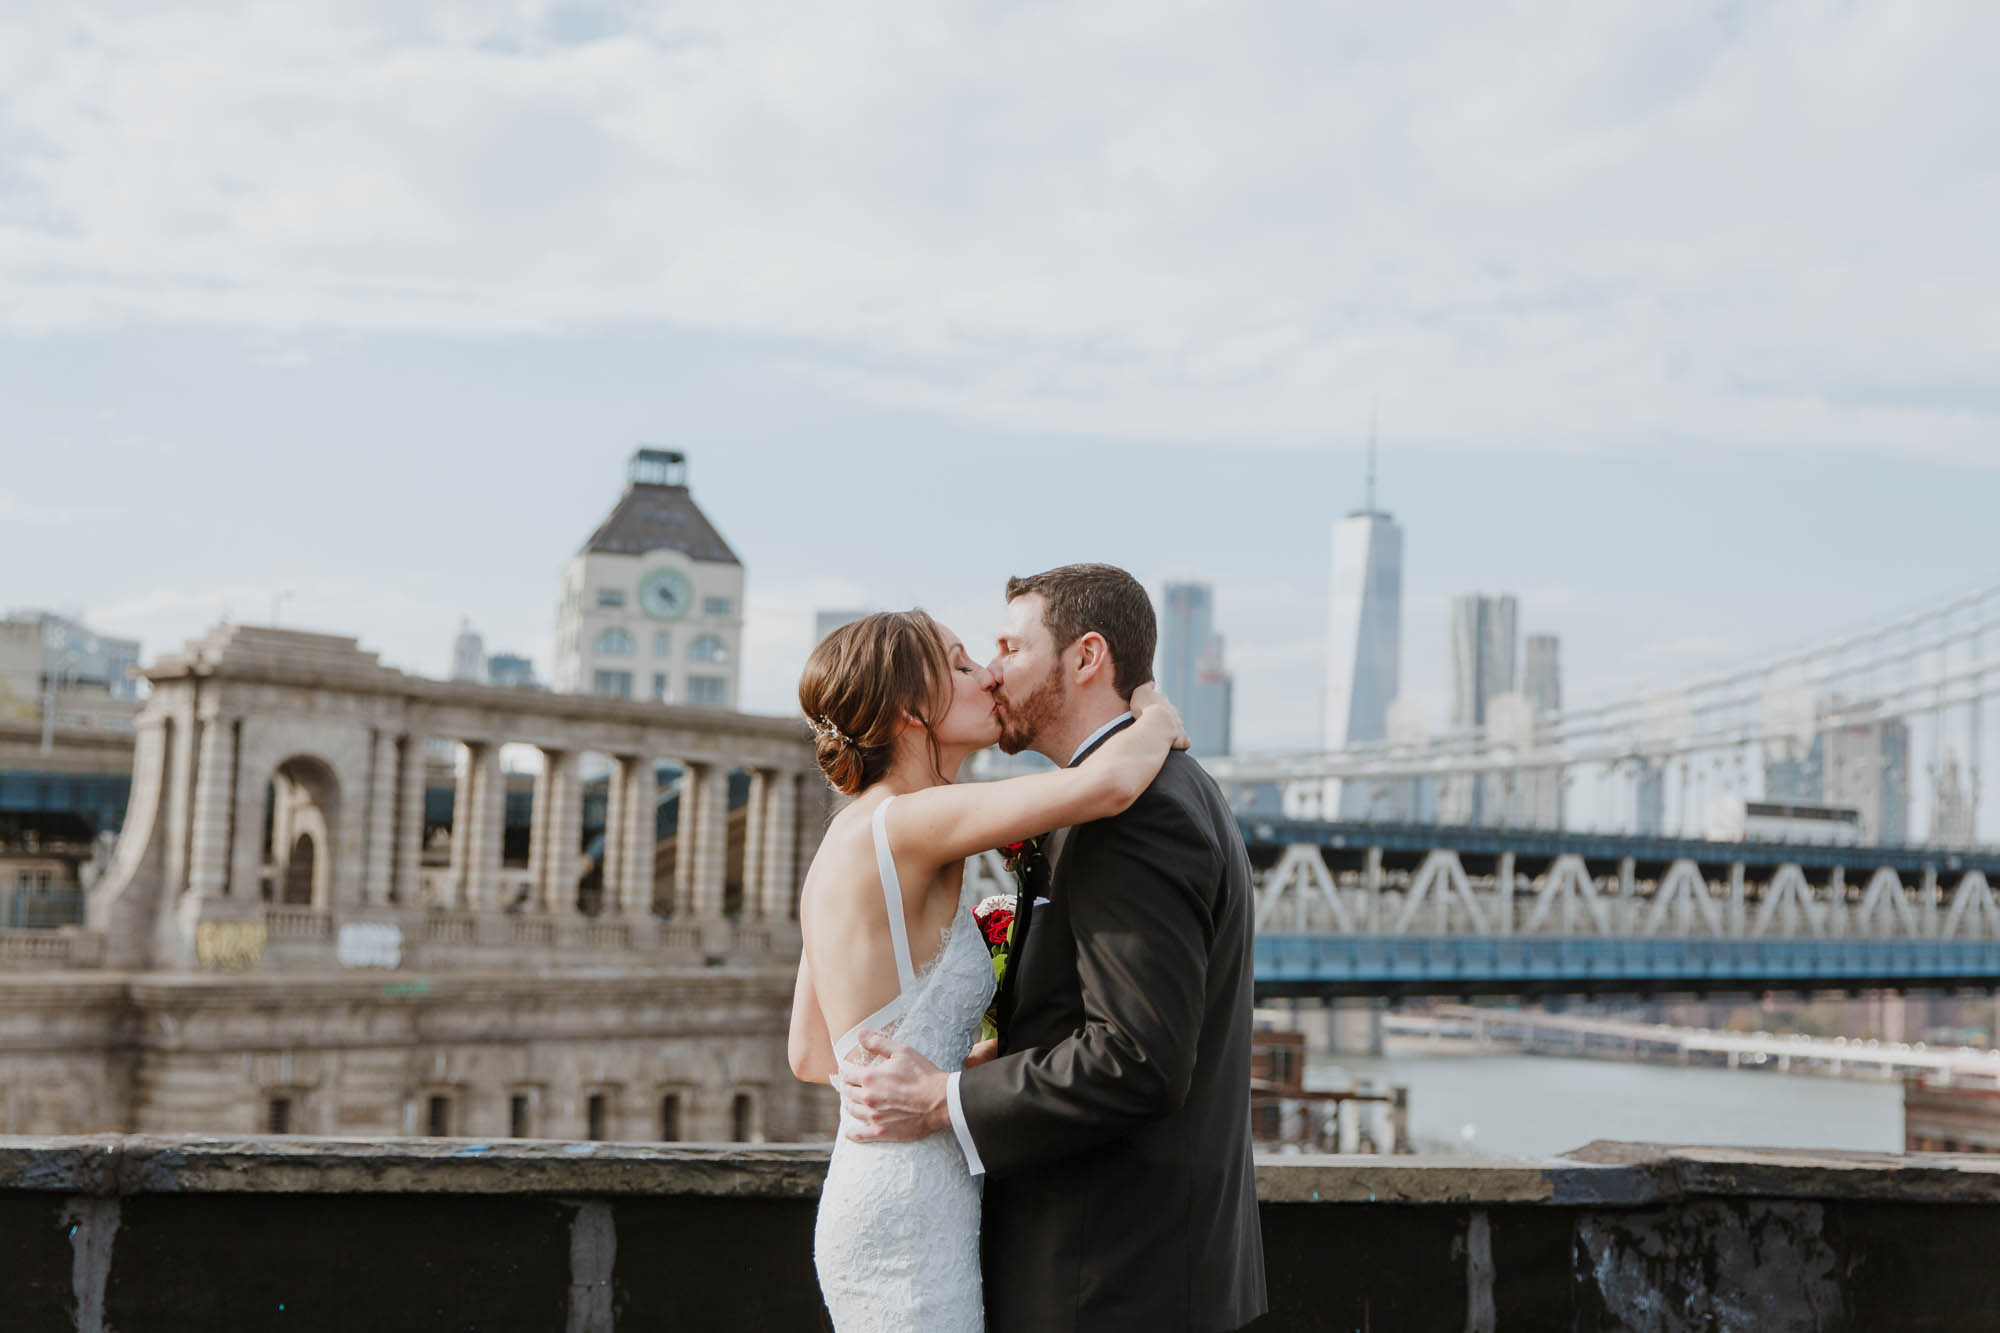 26-bridge-wedding-elizabeth-tsung-photo